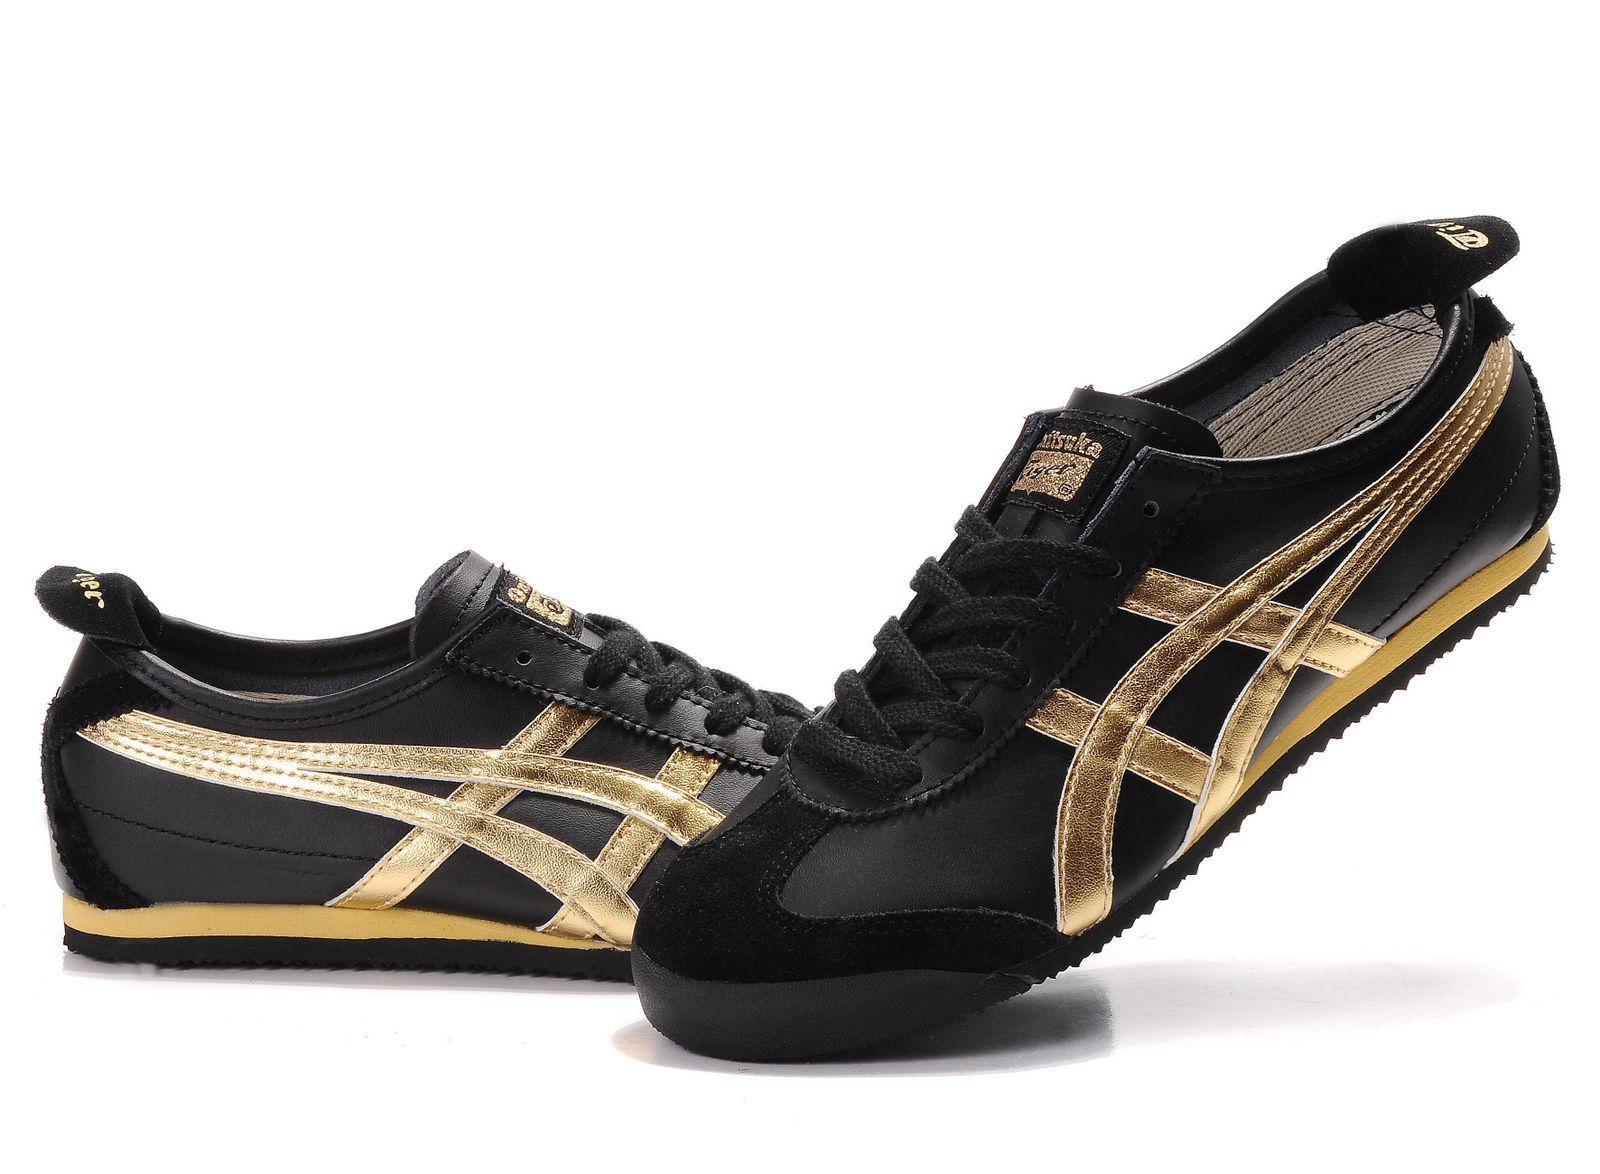 finest selection d15c0 83147 Onitsuka Tiger Mexico 66 Black/Gold | swag + bling bling ...